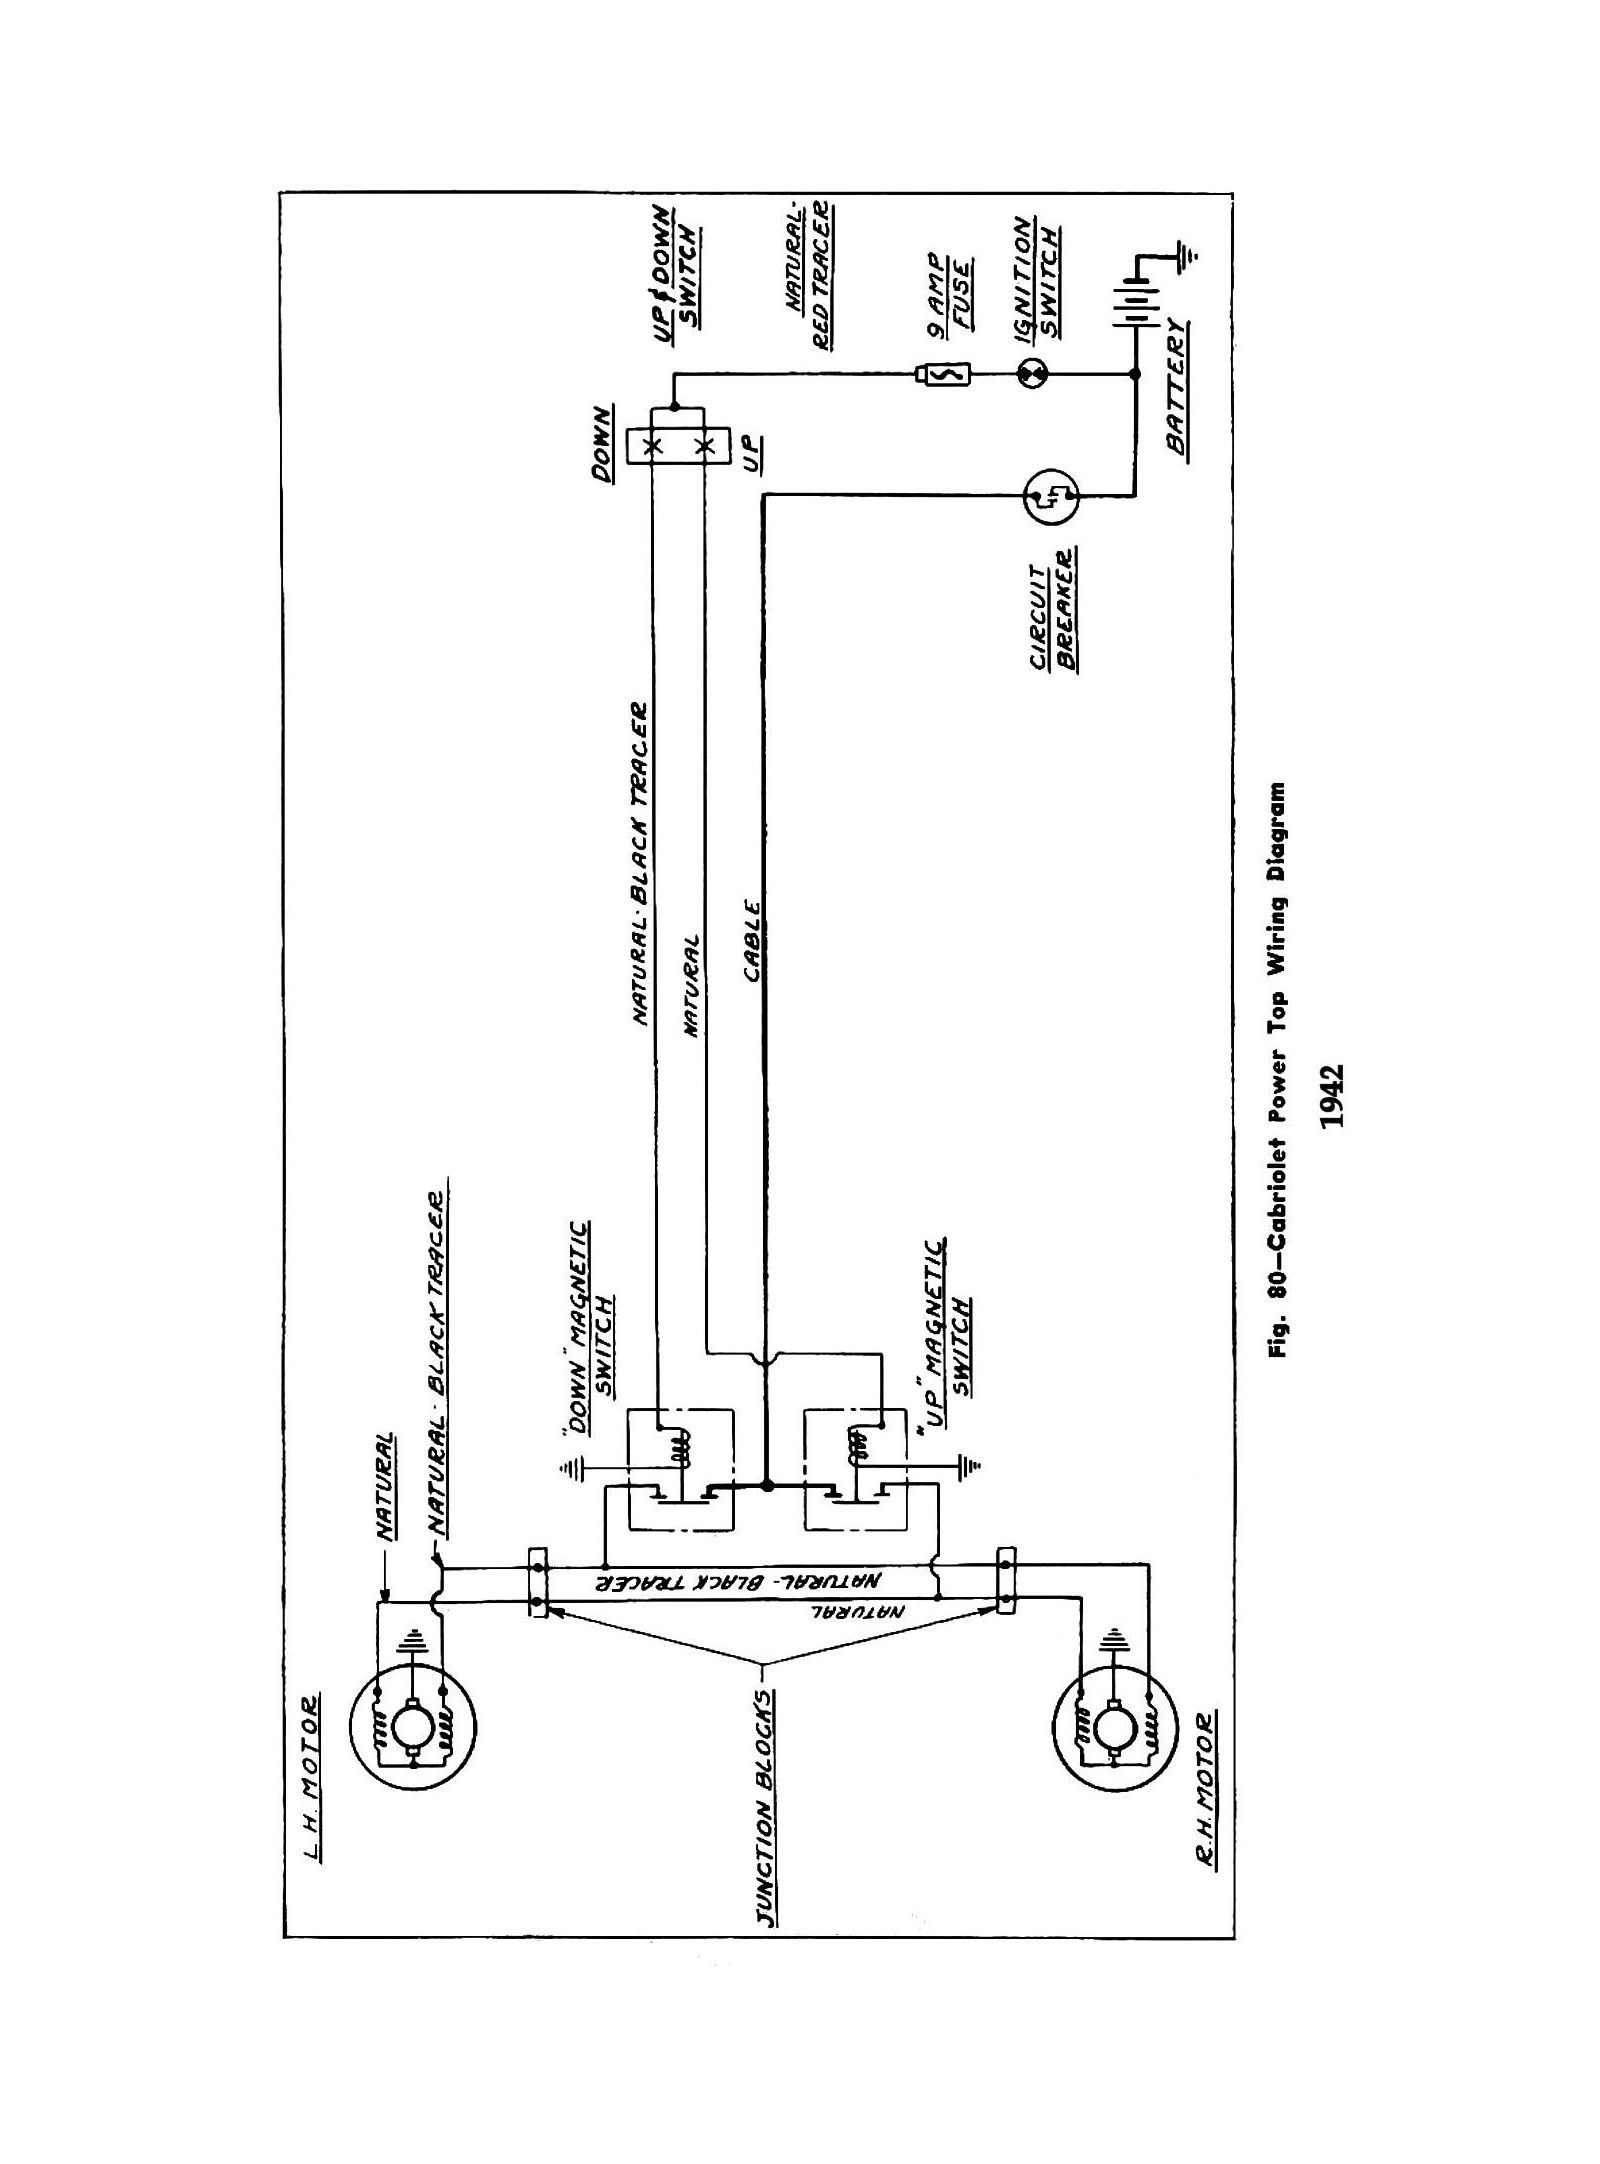 Chevy Wiring Diagrams 2003 Impala Headlight Diagram 1942 Truck Cabriolet Power Top